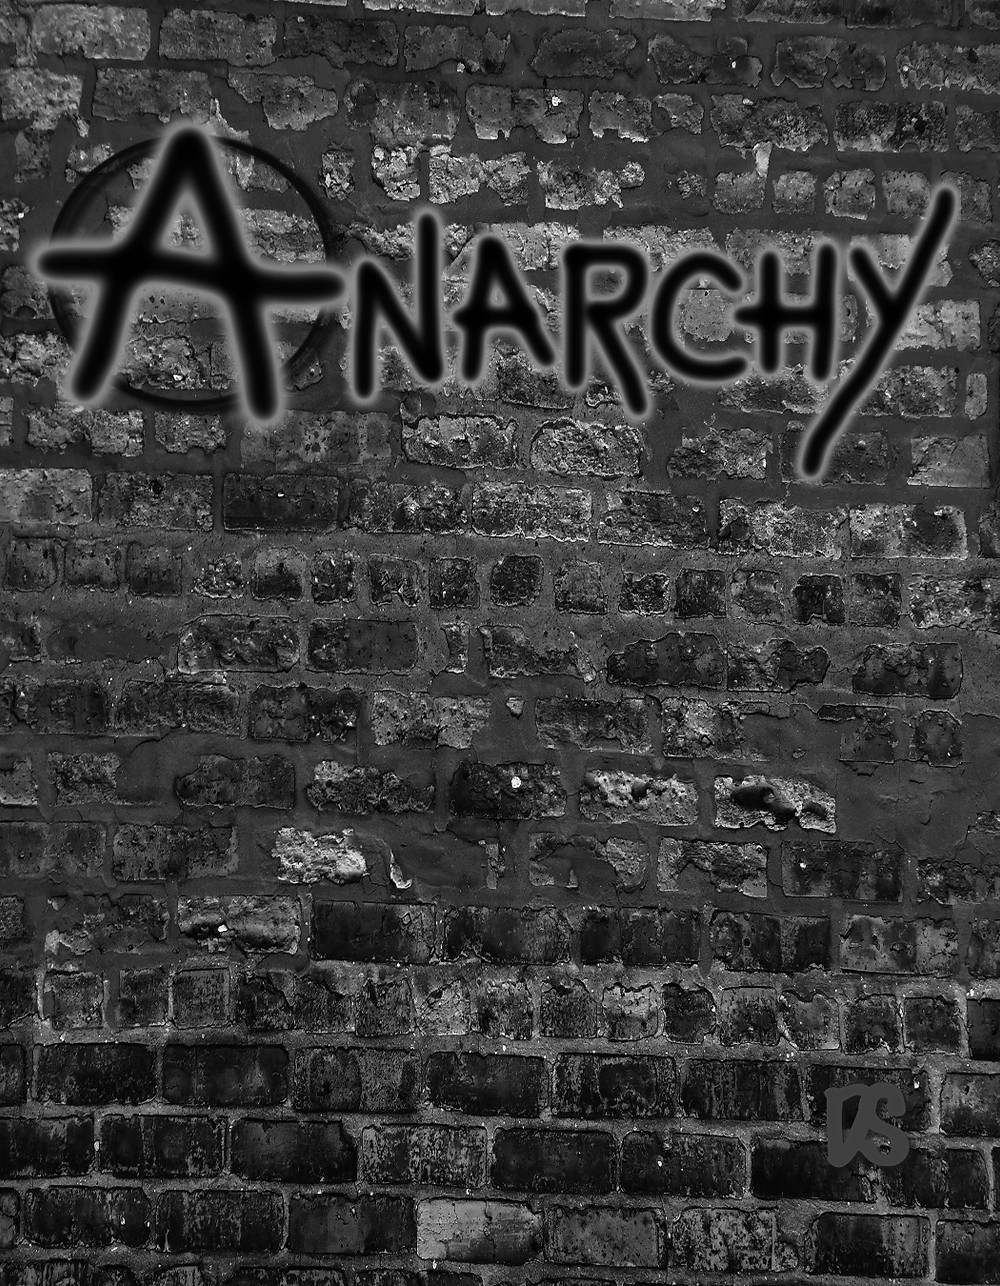 Anarchy wall